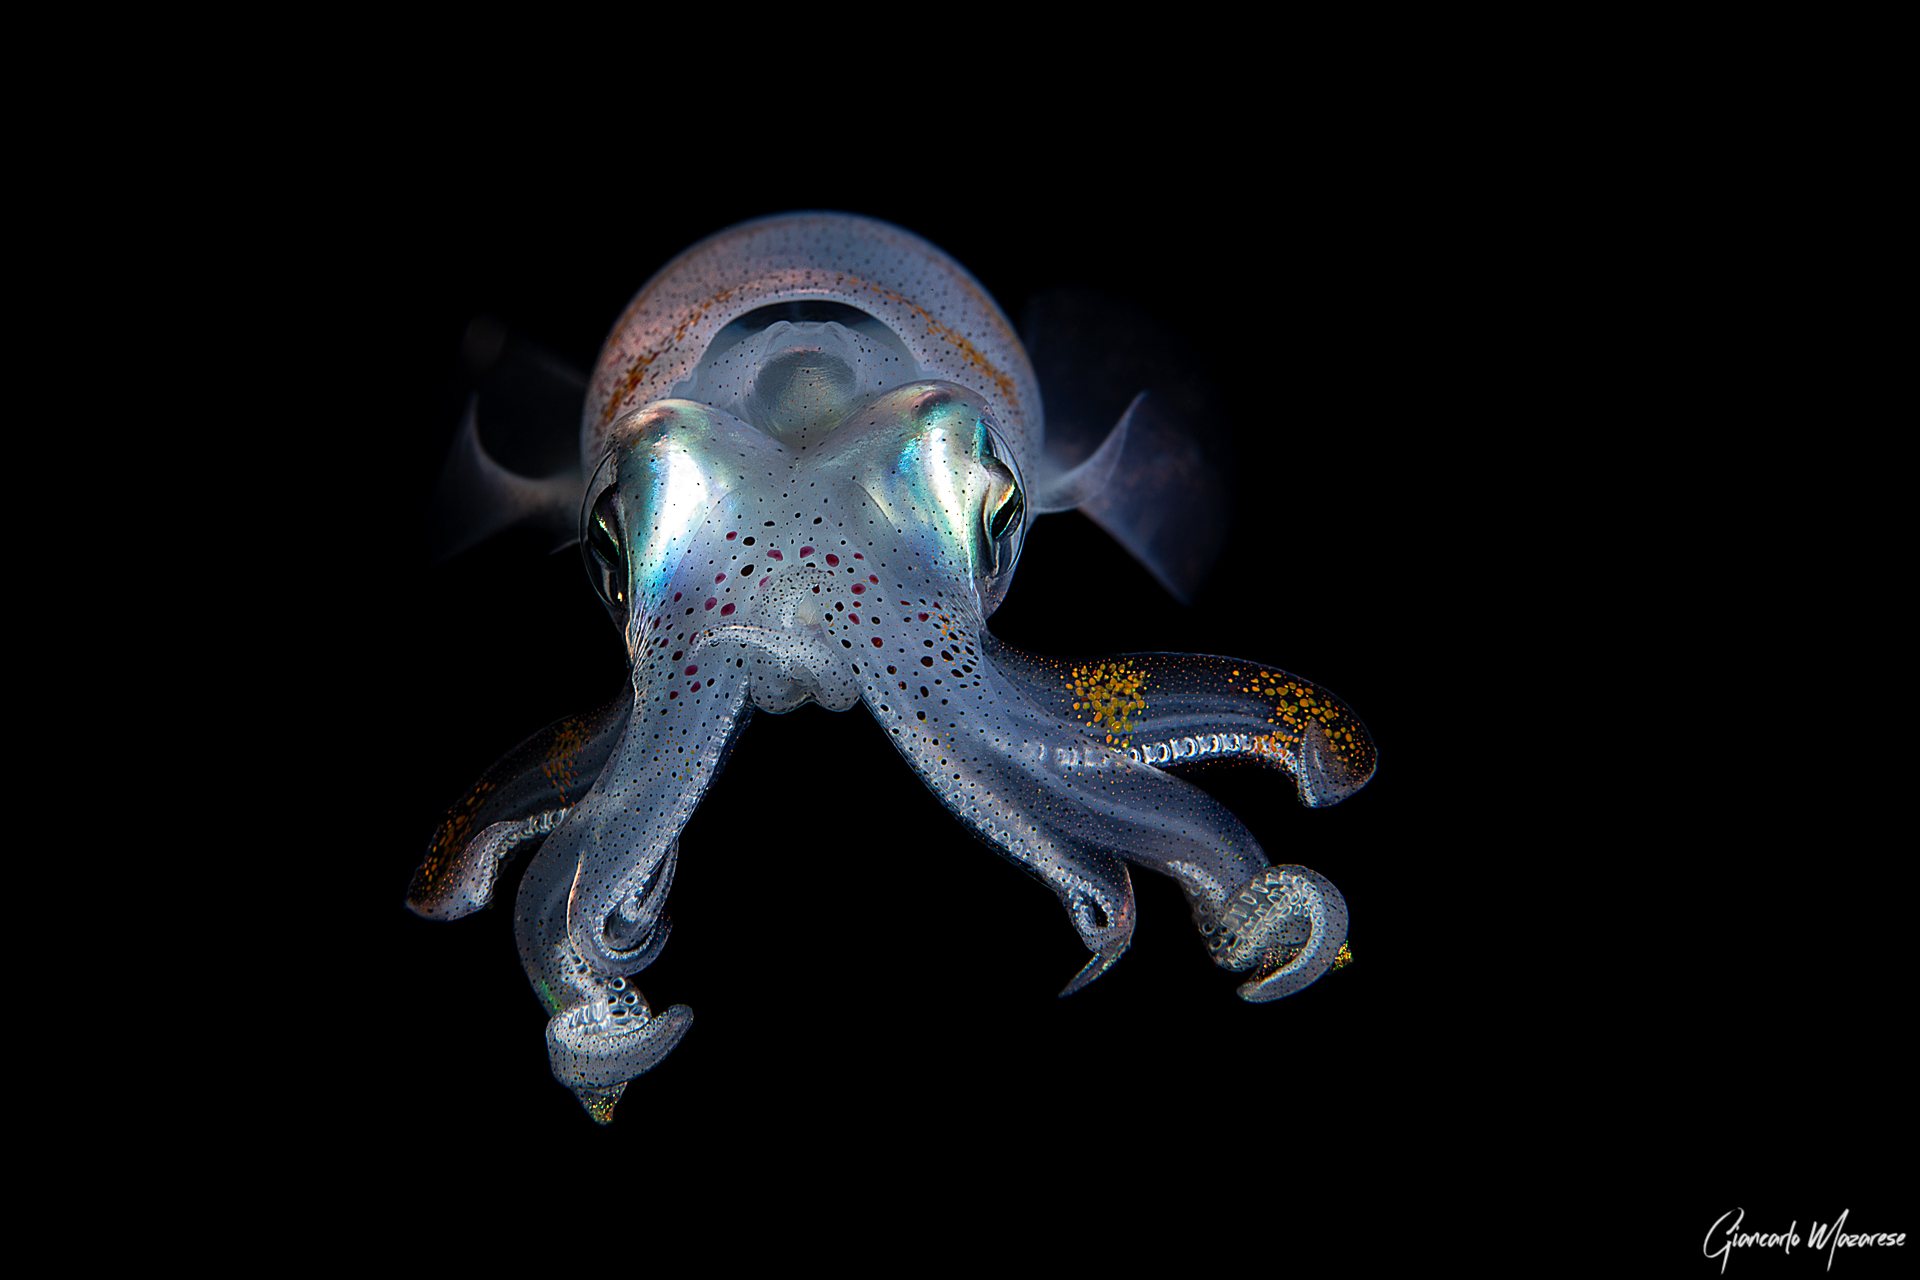 Squid - Sepioteuthis lessoniana...